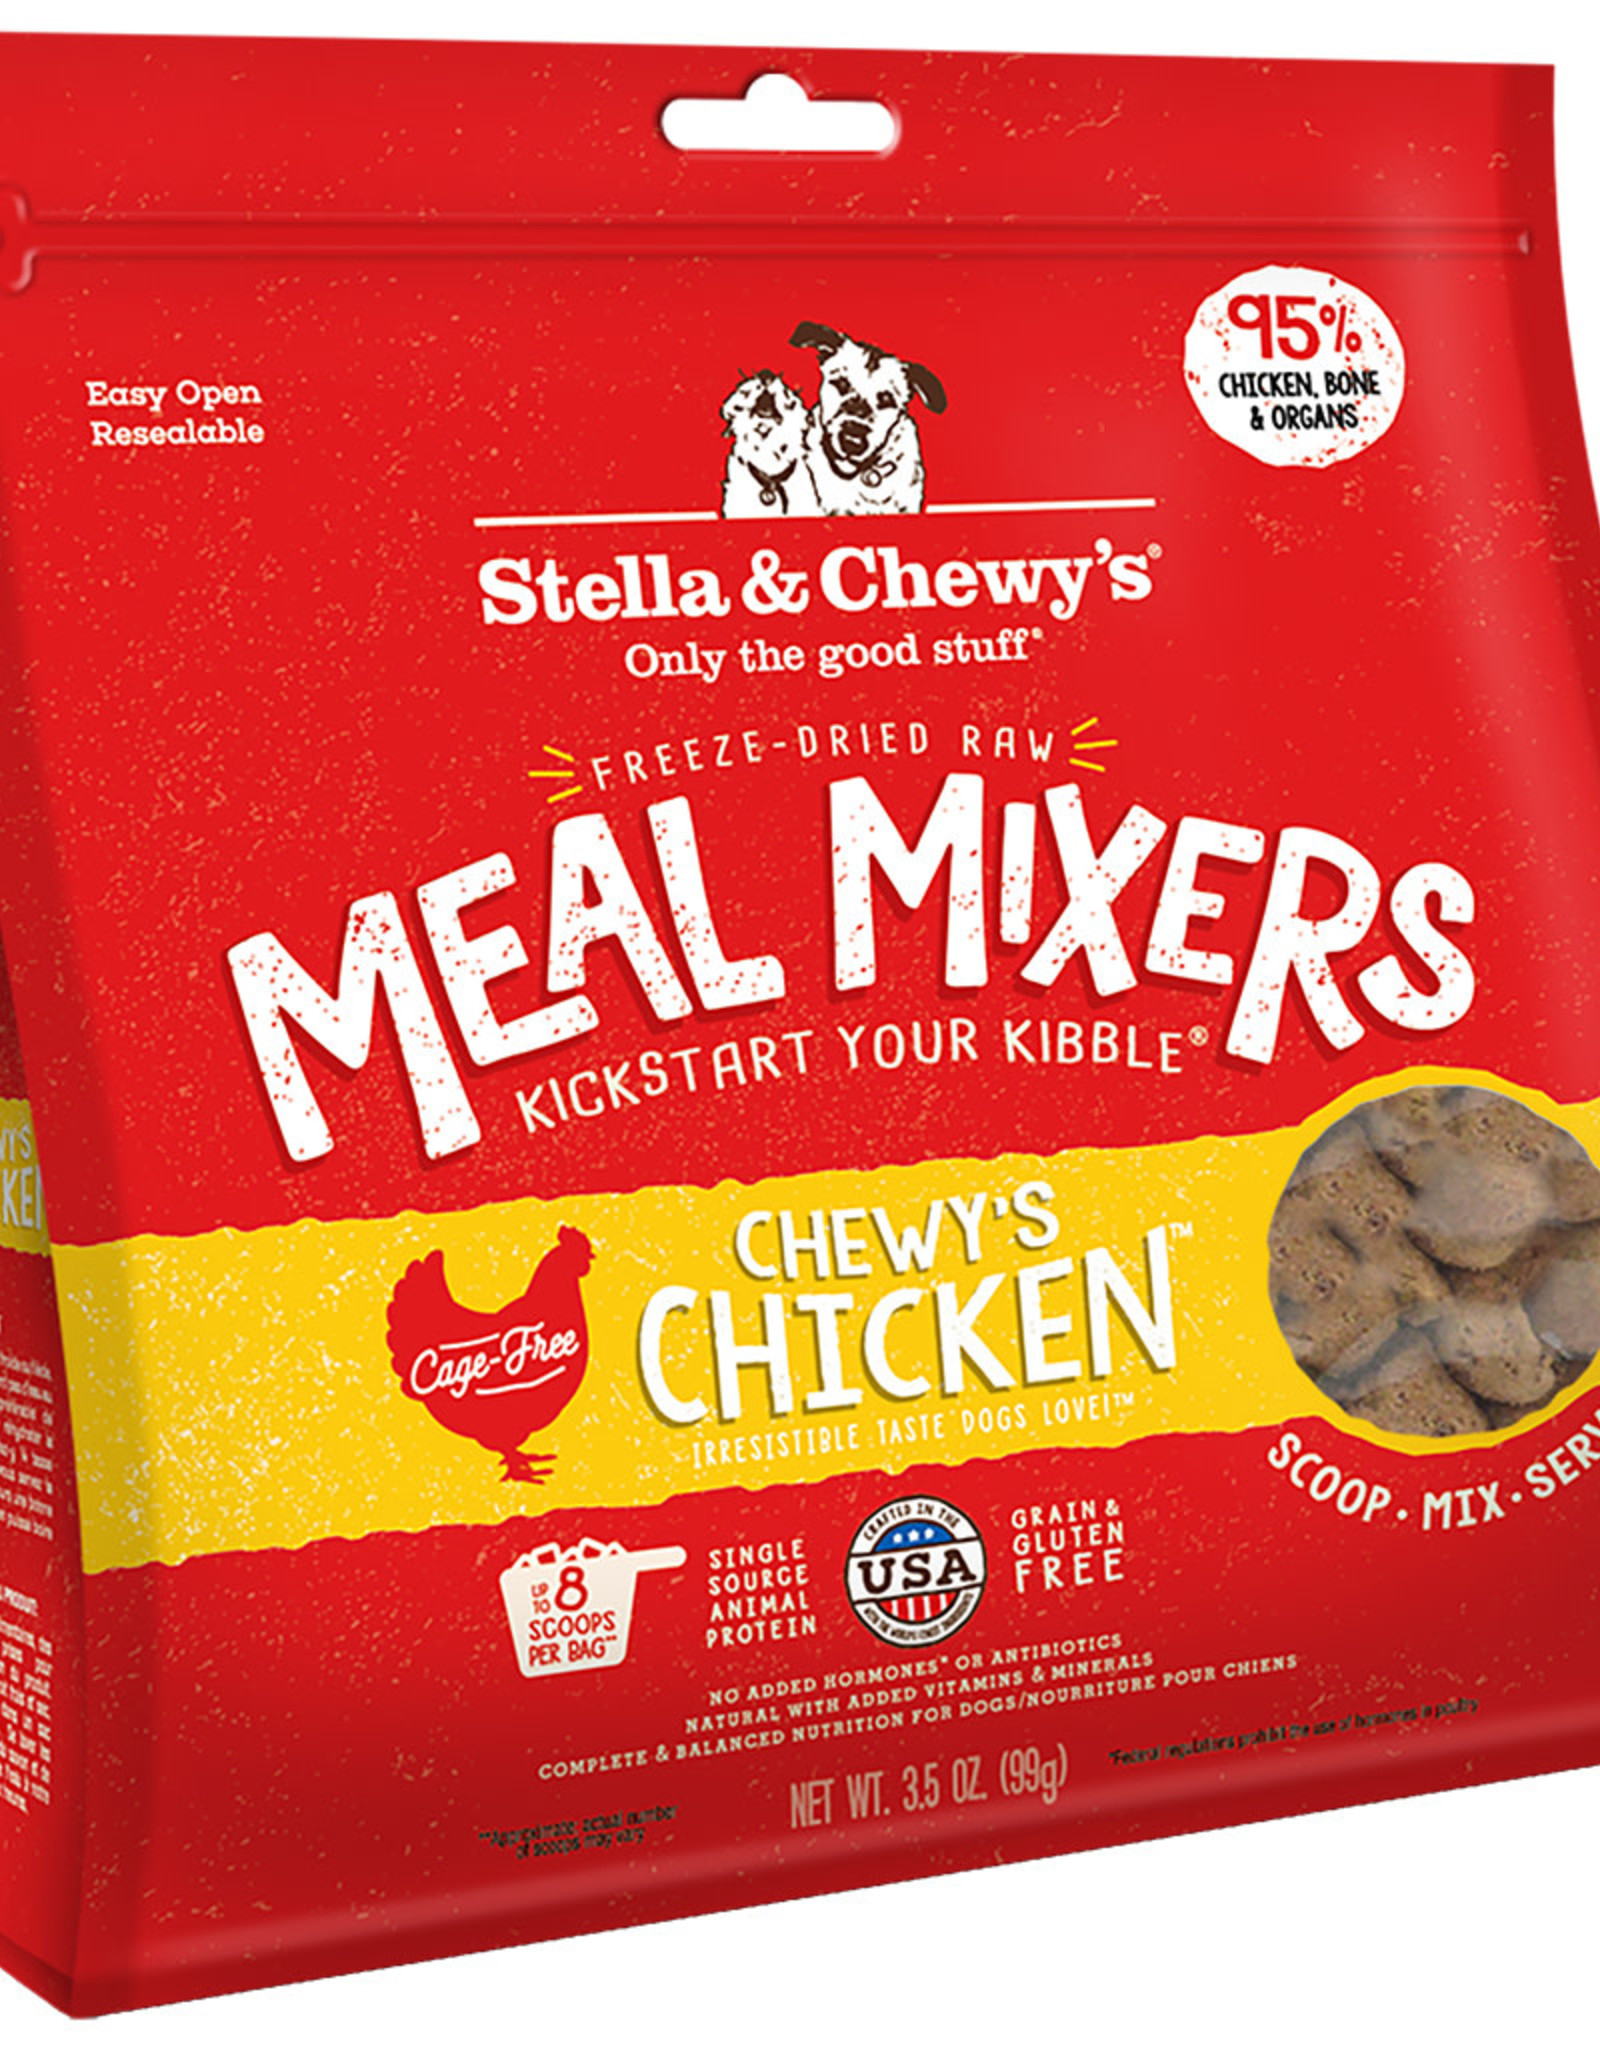 Stella & chewy's Stella & Chewy's Chicken Meal Mixers 3.5OZ